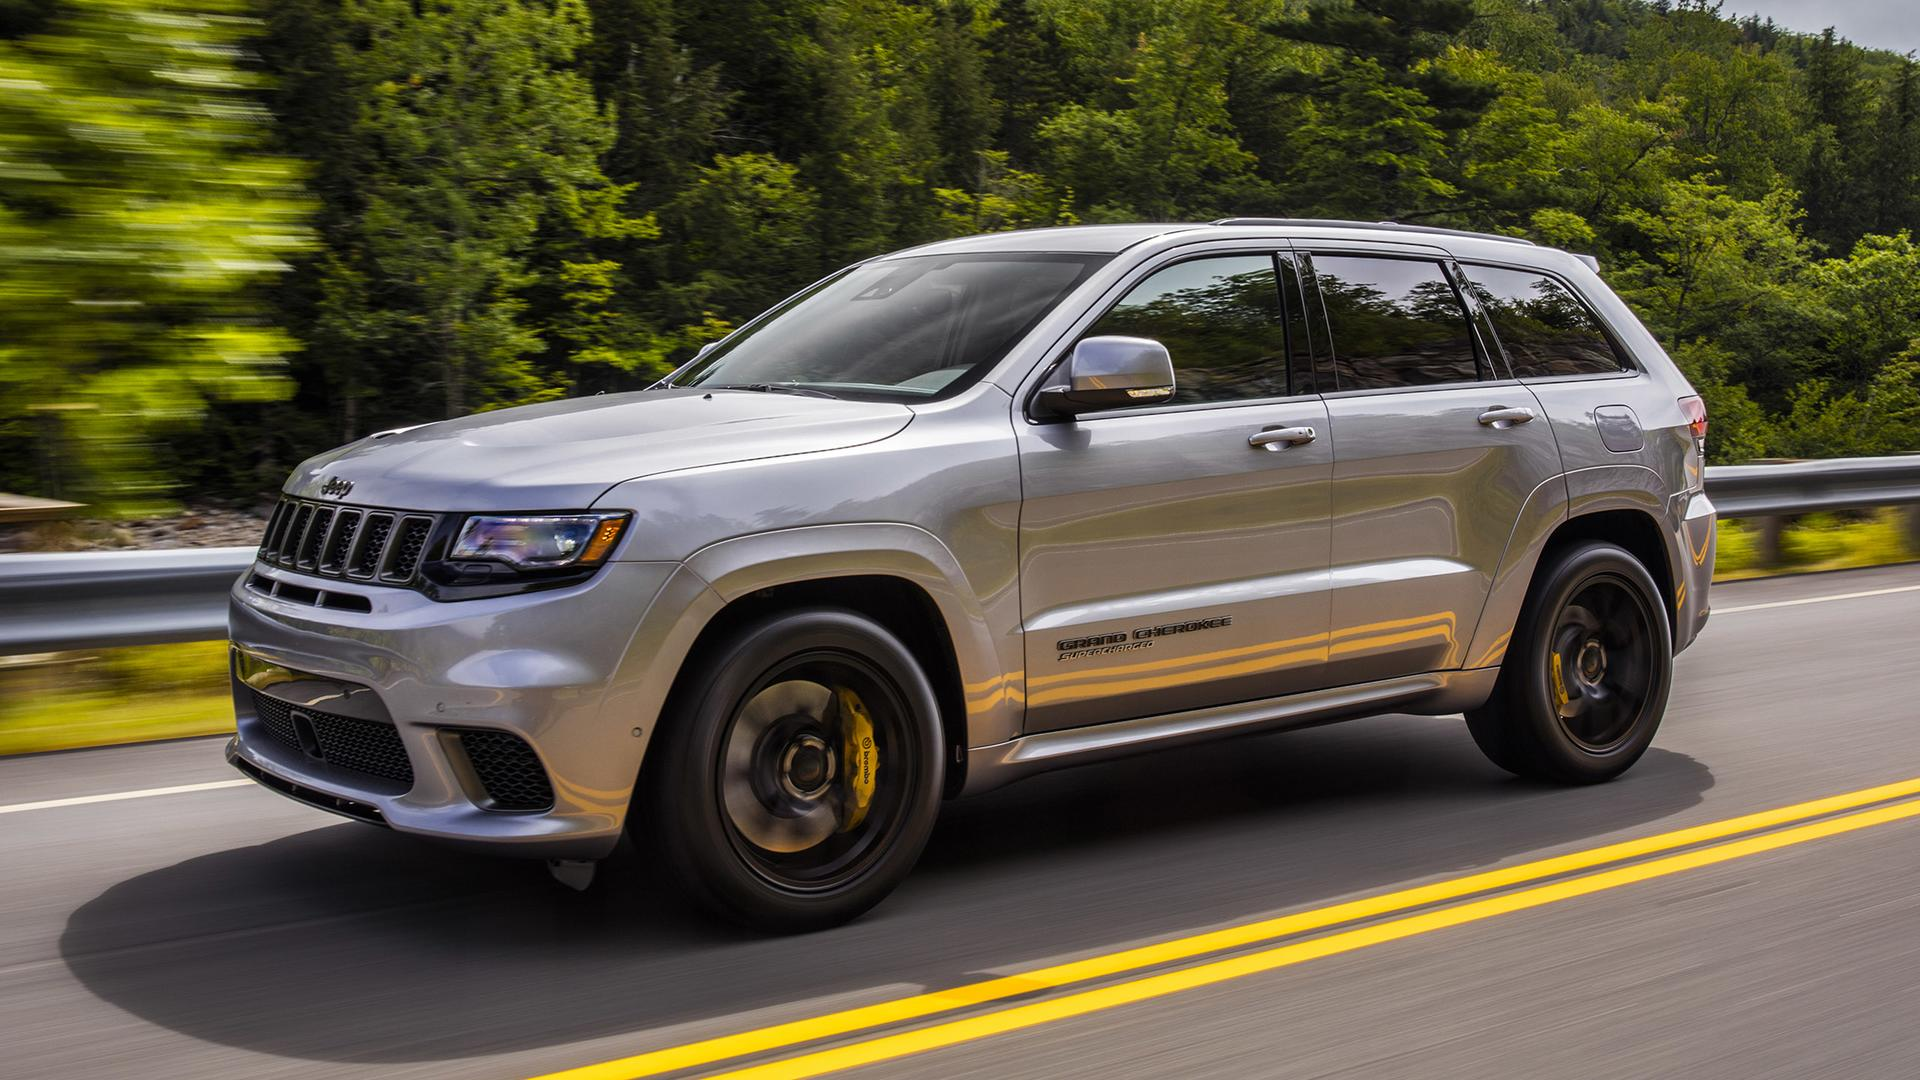 Jeep Grand Cherokee Trackhawk News and Reviews  f3a9bf5c46a